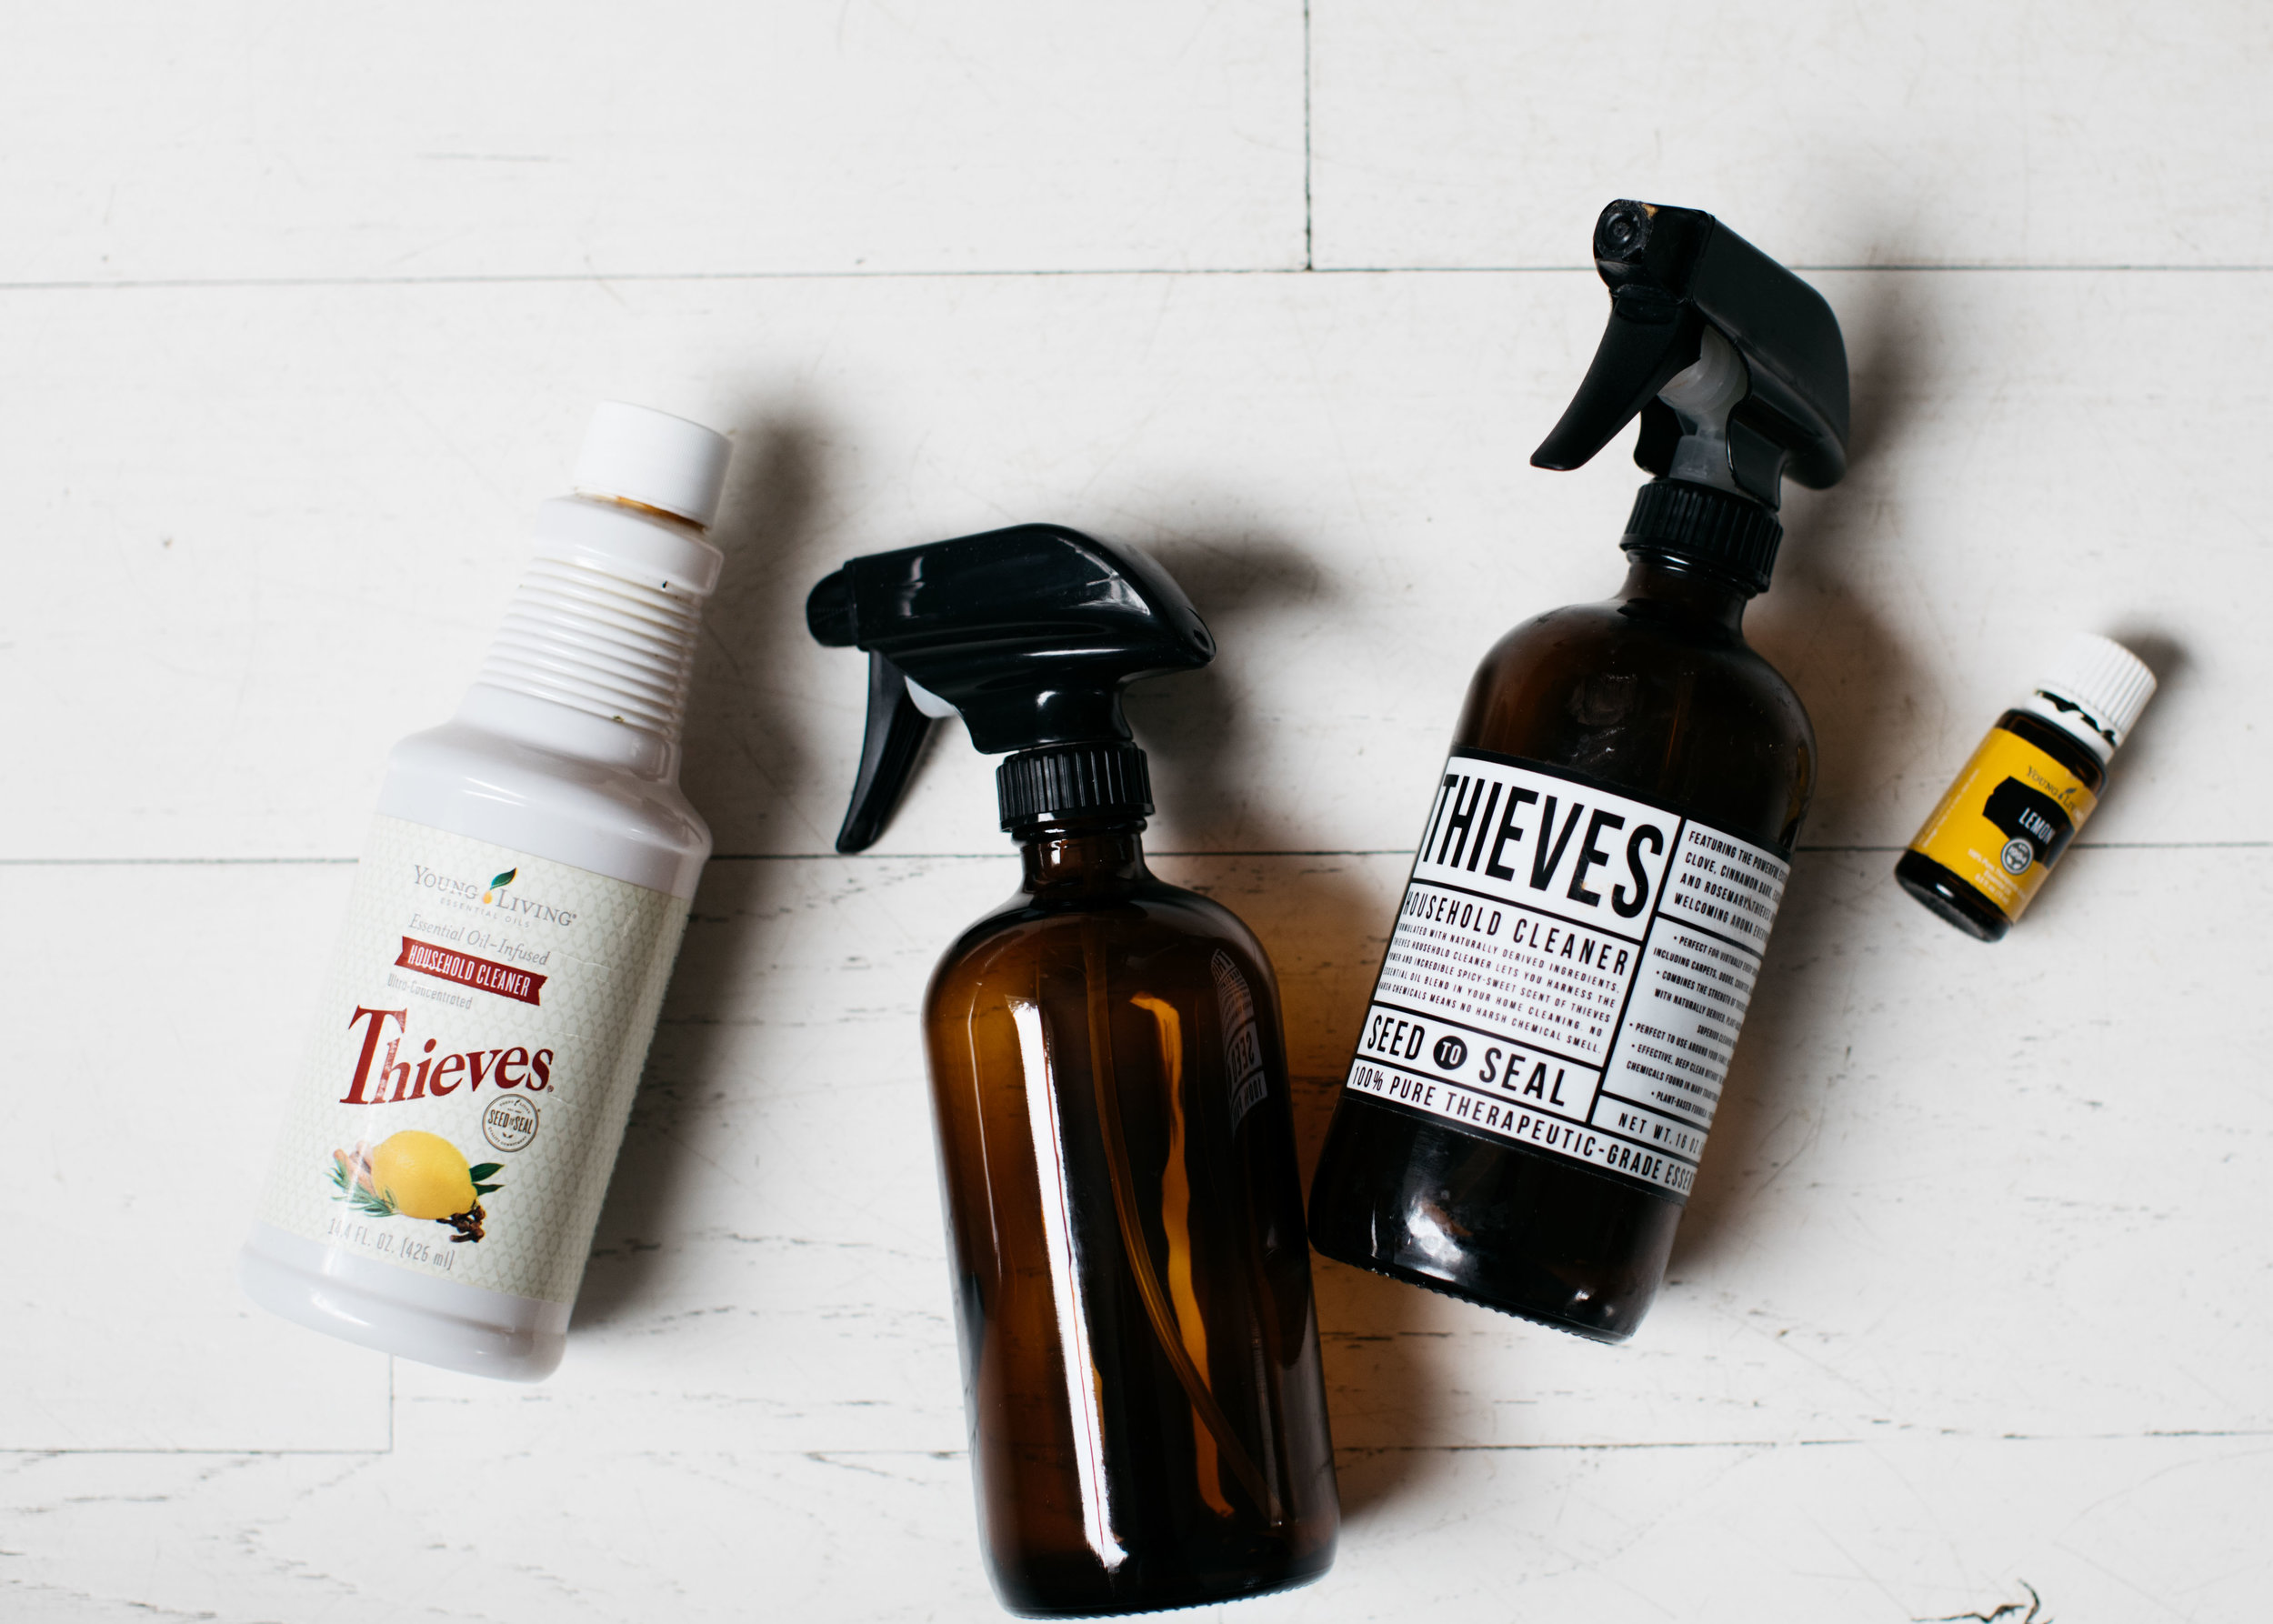 All purpose cleaner recipe: Blend 1 cap of Thieves concentrate cleaner to one 16oz glass spray bottle. Use throughout home. Add lemon for extra cleaning strength.  Toxin Free Soft Scrub: Mix 1/2 cup baking soda, 2 caps of thieves concentrate + 8 drops of lemon. Mix well. Shake onto surface and scrub. Let sit for ten minutes. Rinse.  Stain Spray: 1 Capful Thieves Laundry Detergent + 2 Capfuls Concentrate cleaner + 20 drops lemon essential oil, fill with water.